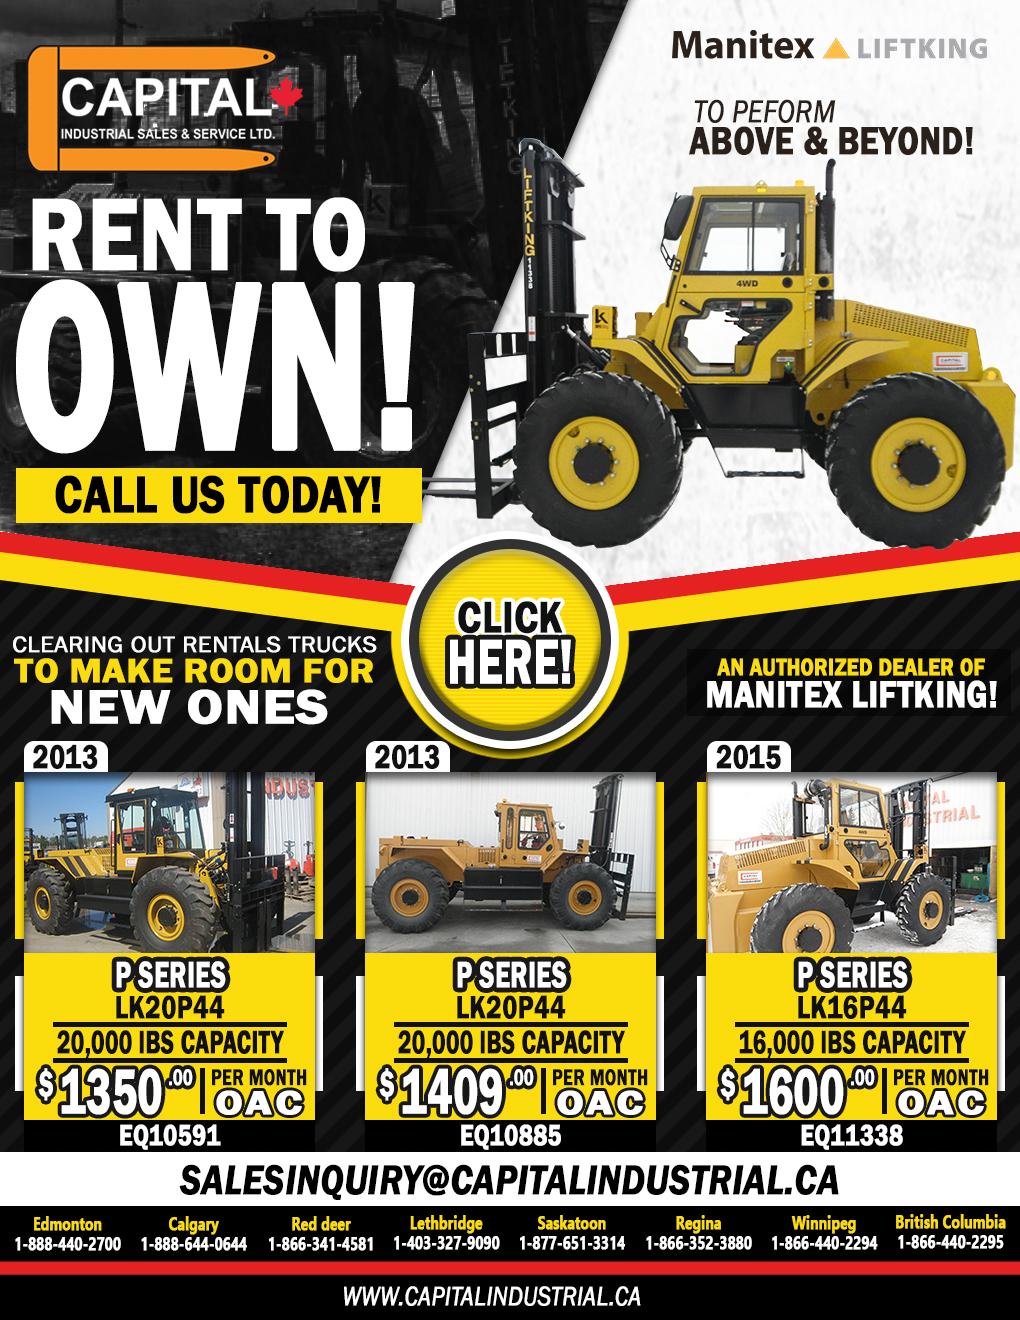 Rent To Own A Liftking Unit!